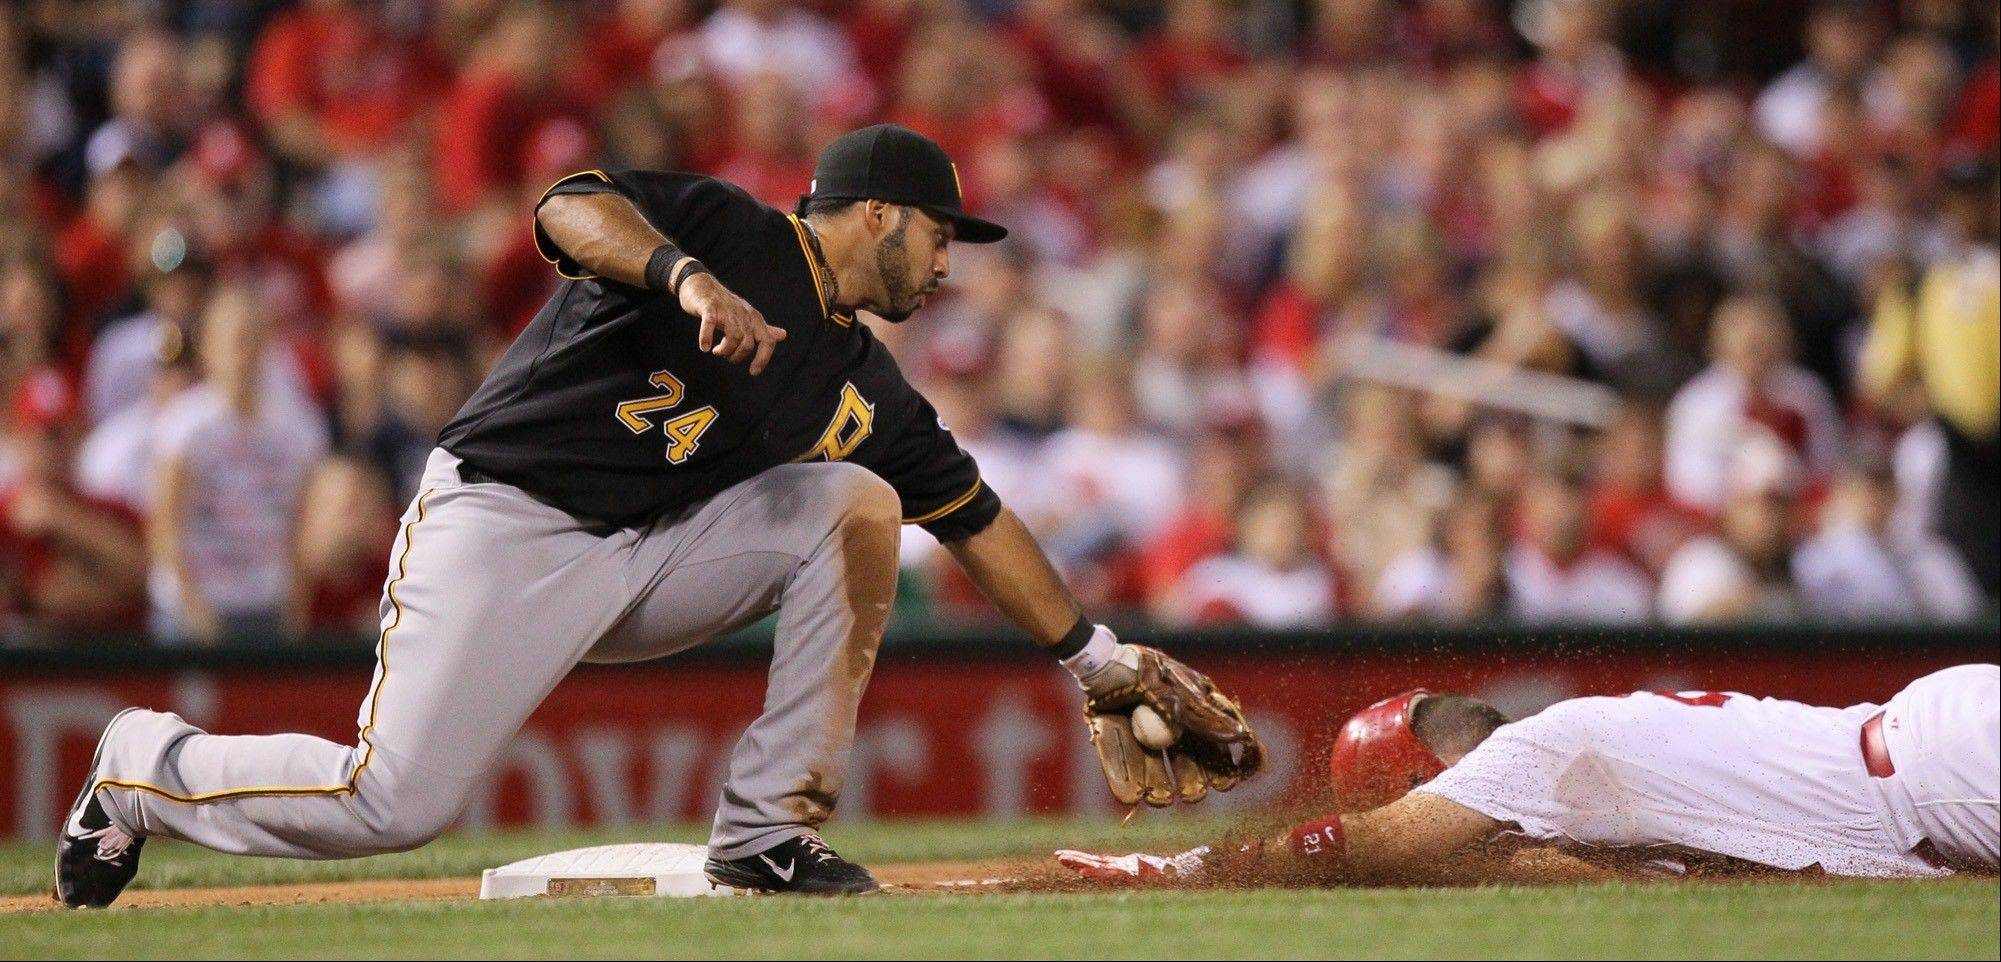 Pittsburgh Pirates third baseman Pedro Alvarez tags out the Cardinals' Allen Craig, who was trying to steal third base in the fourth inning Friday in St. Louis.